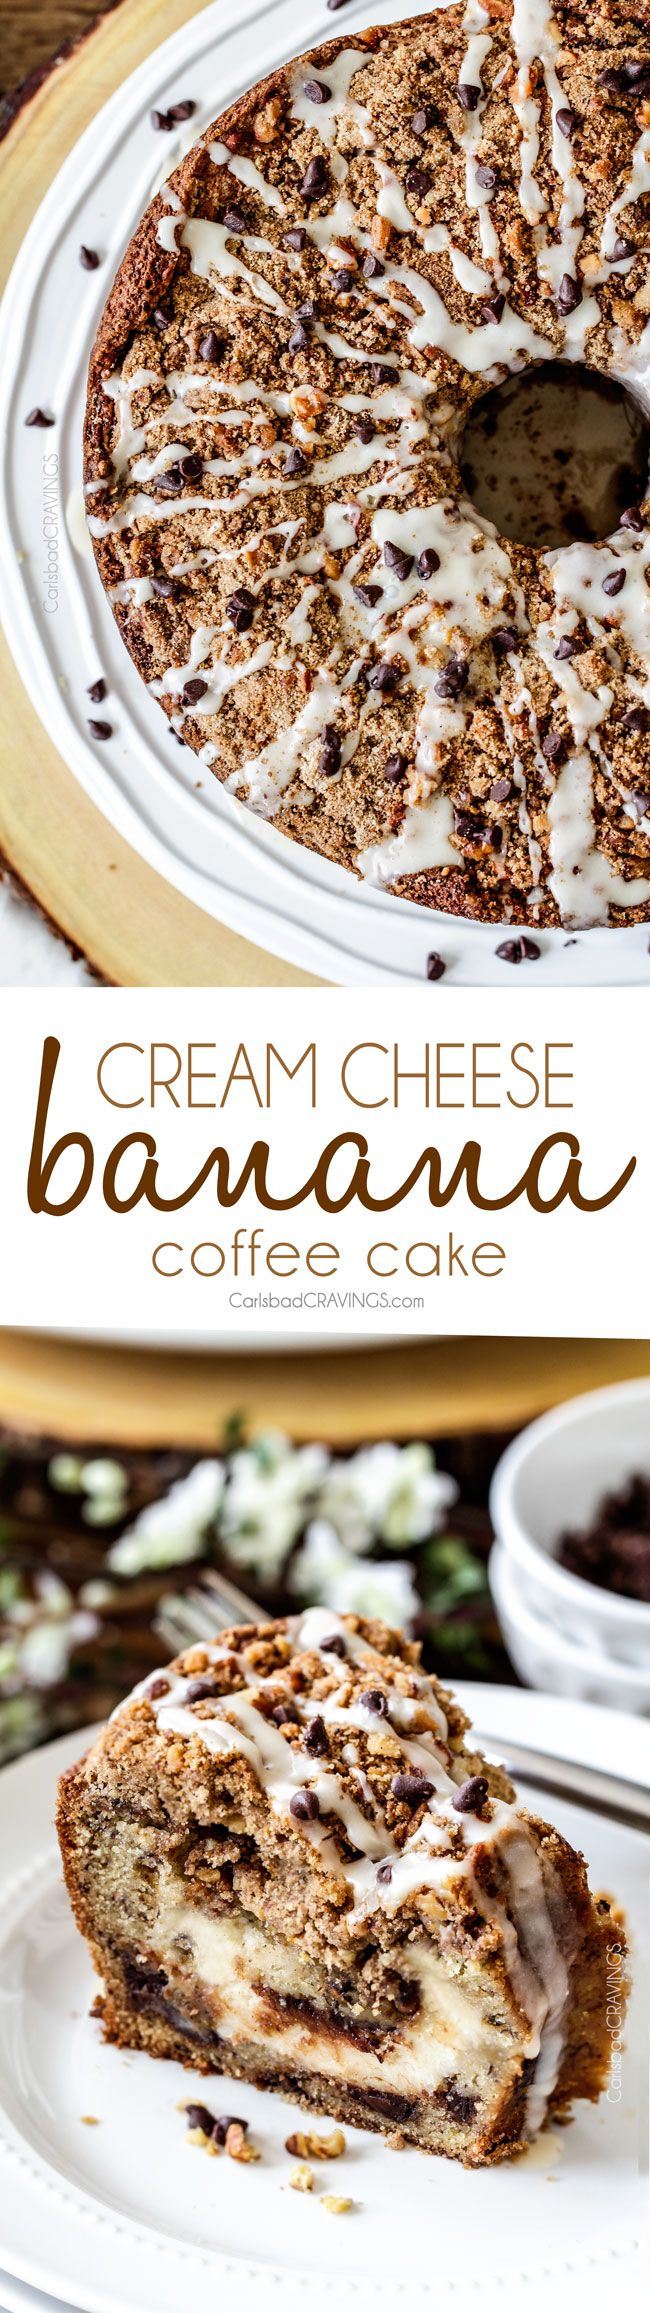 The best Banana ANYTHING ever! Moist Banana Bread Coffee Cake riddled with chocolate chips and walnuts (optional) with an INCREDIBLY creamy cheesecake-like cream cheese filling all topped with brown sugar walnut streusel and vanilla drizzle.